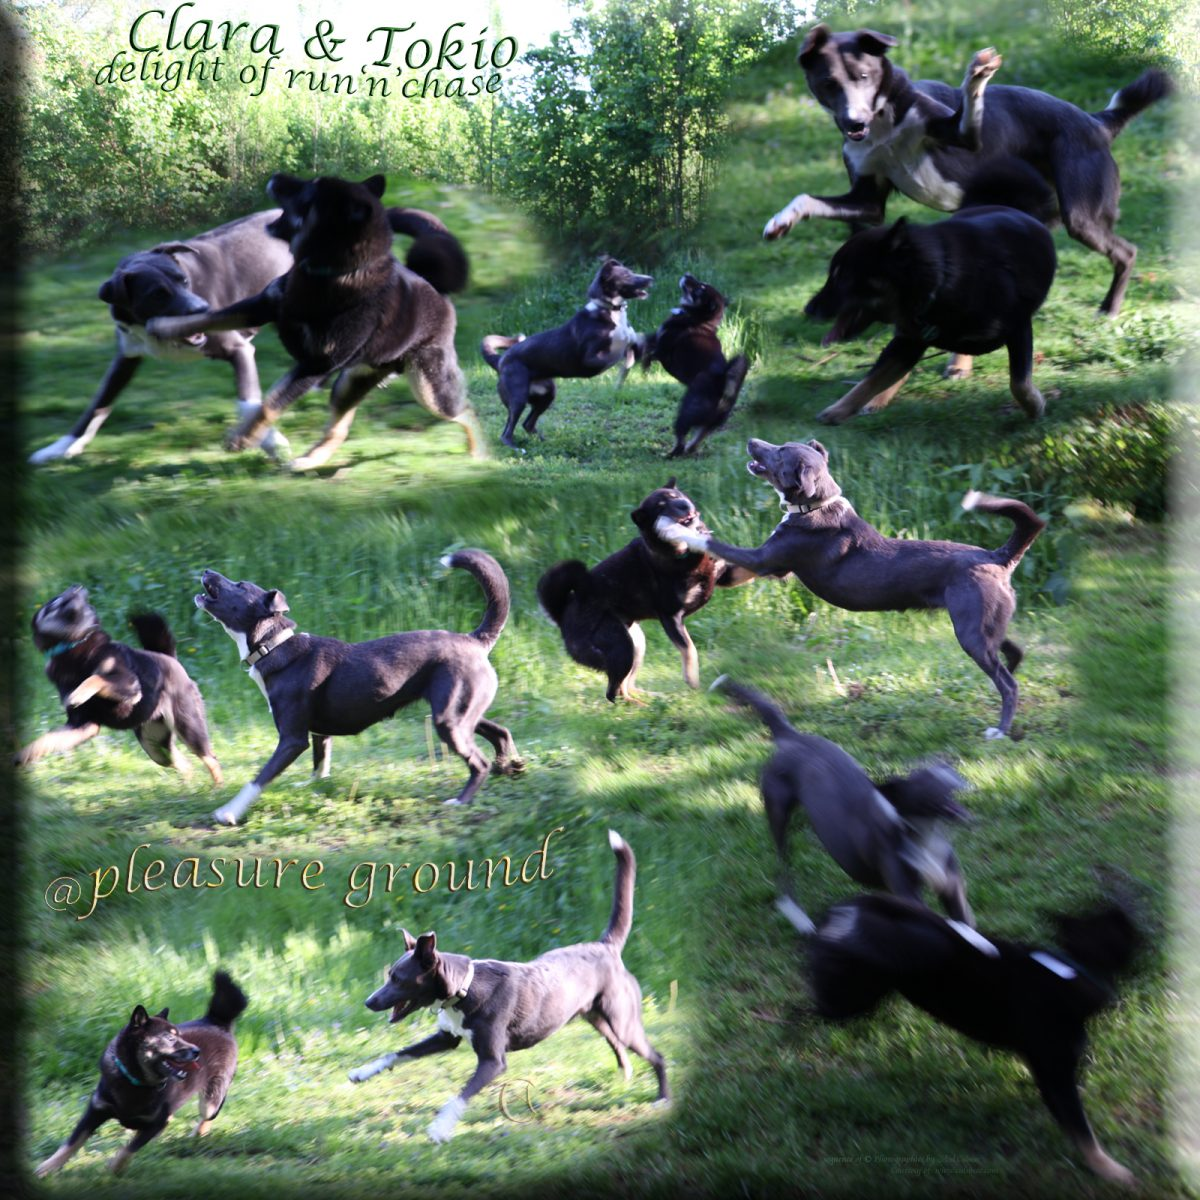 Clara and Tokio - delight of run and chase at pleasure ground - Collage and Photos by Axel Culmsee